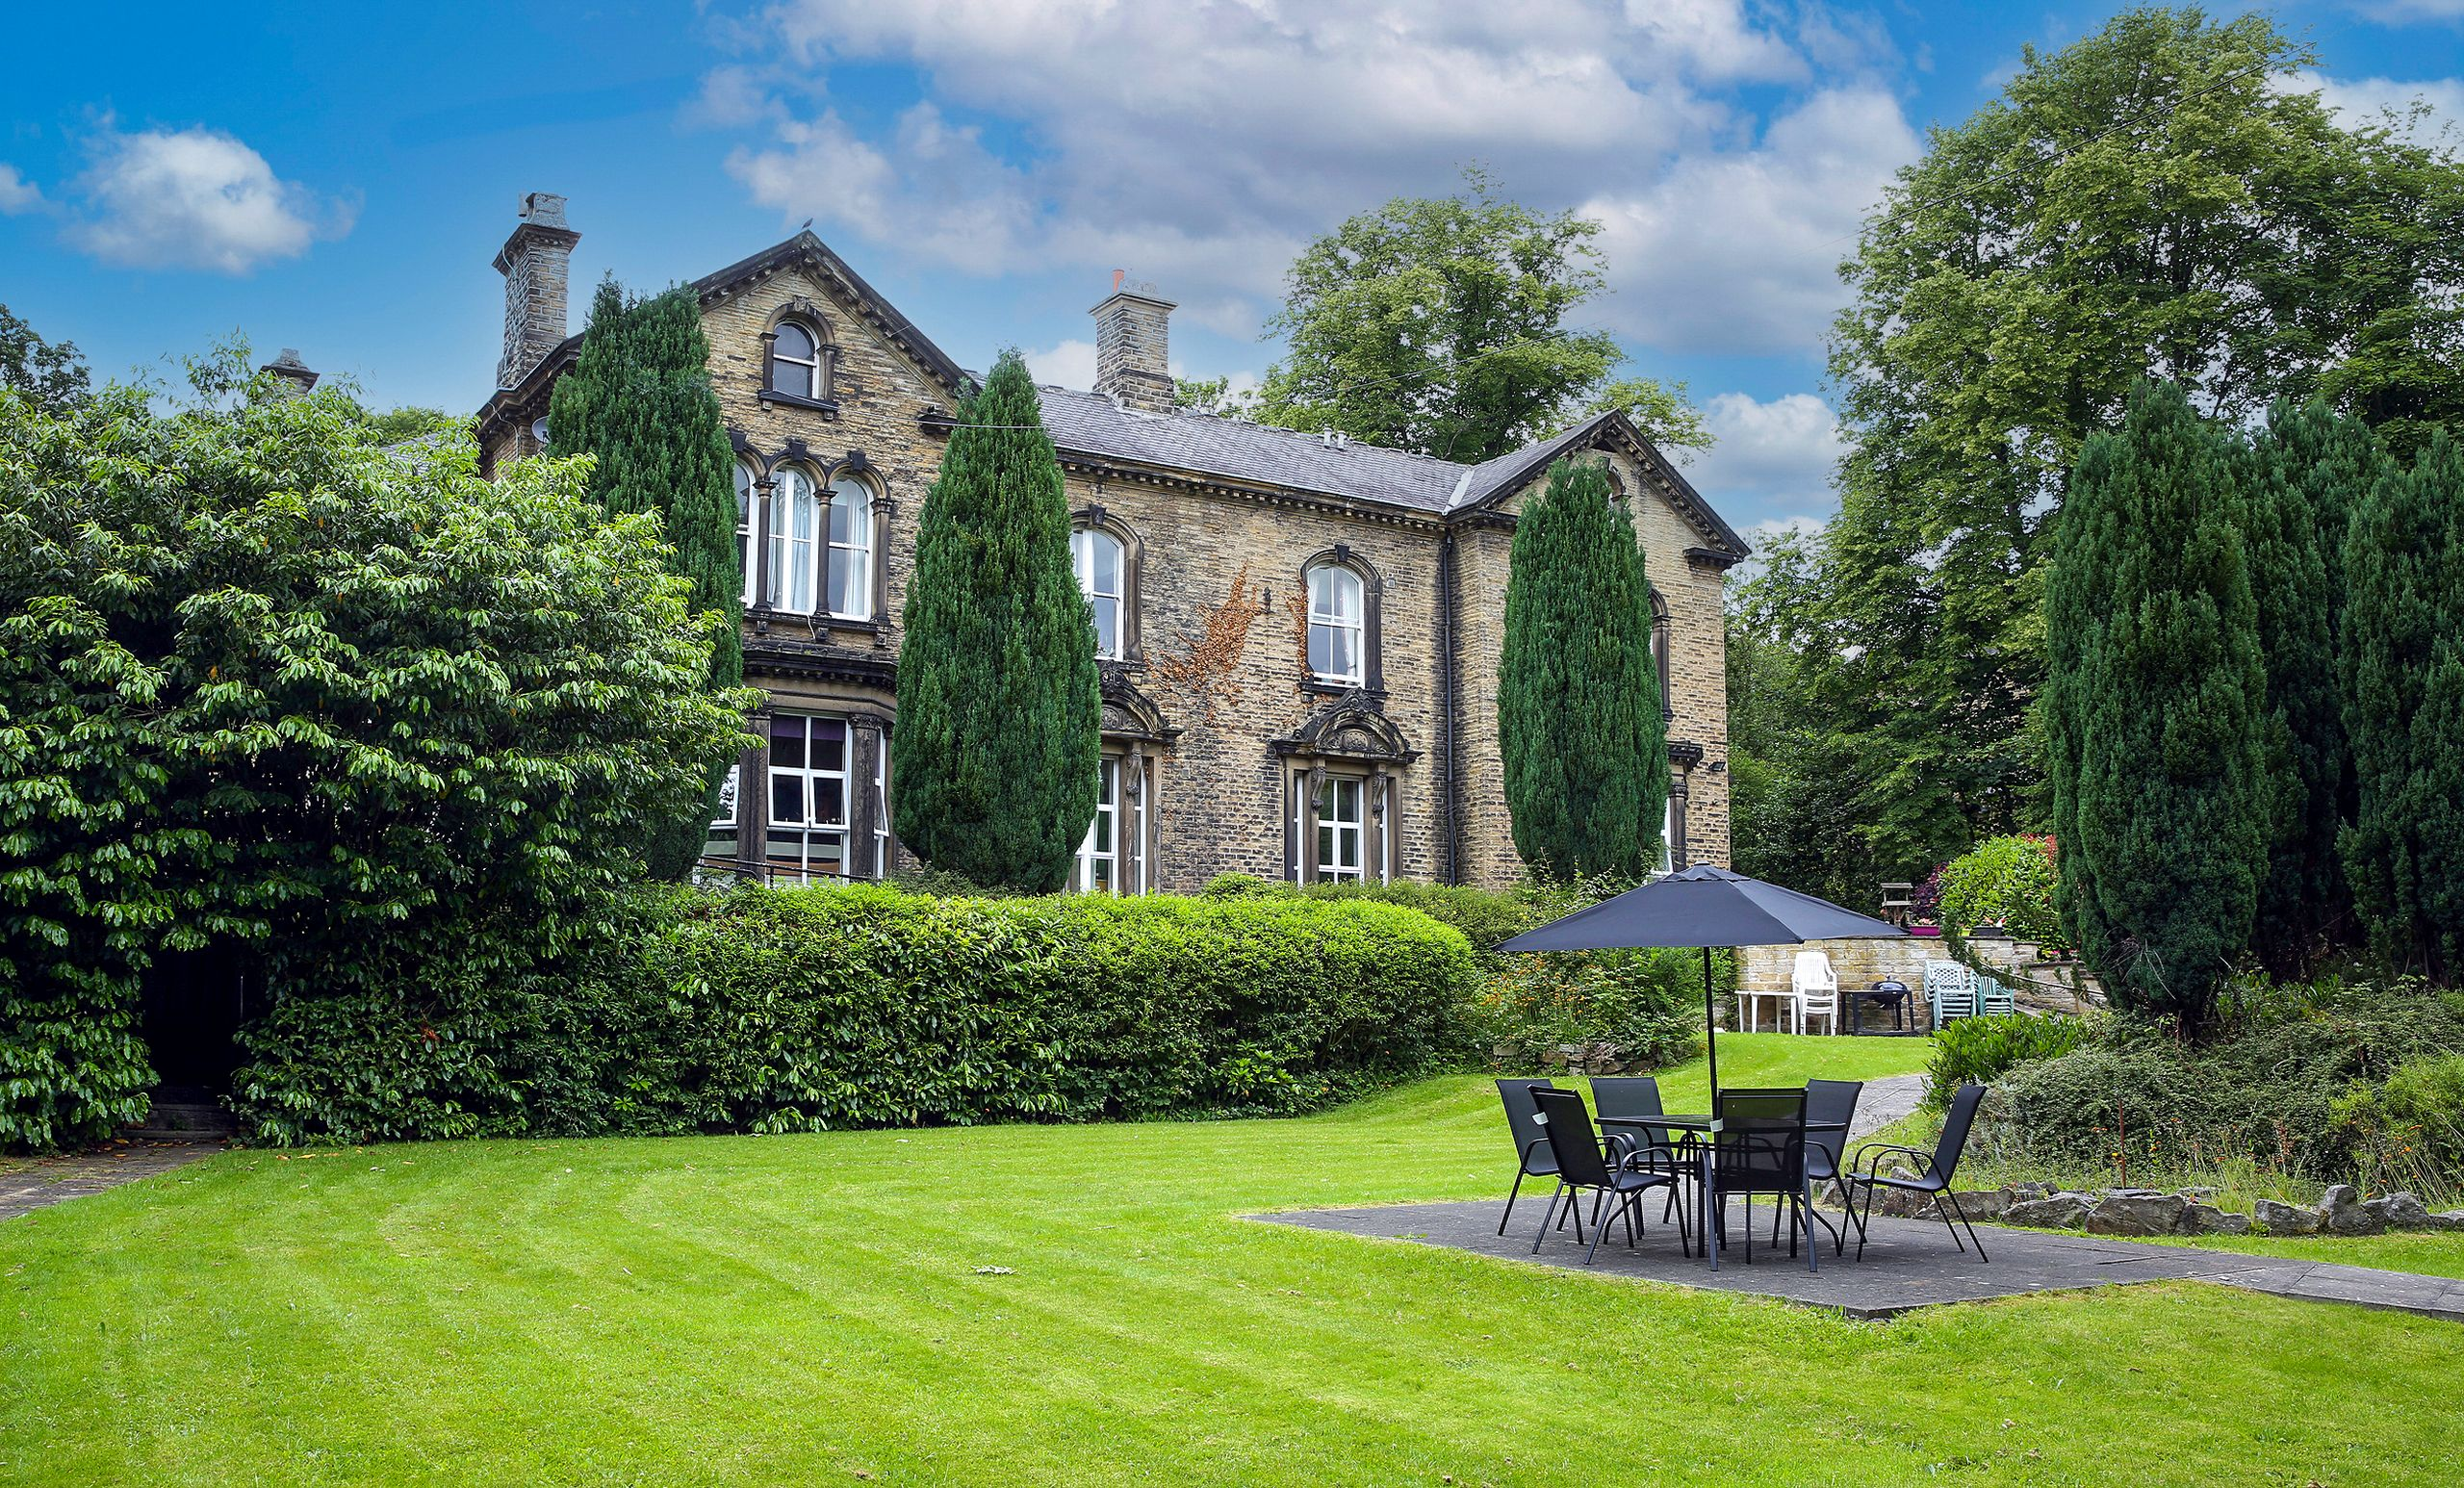 Alwoodleigh Care Home in Huddersfield